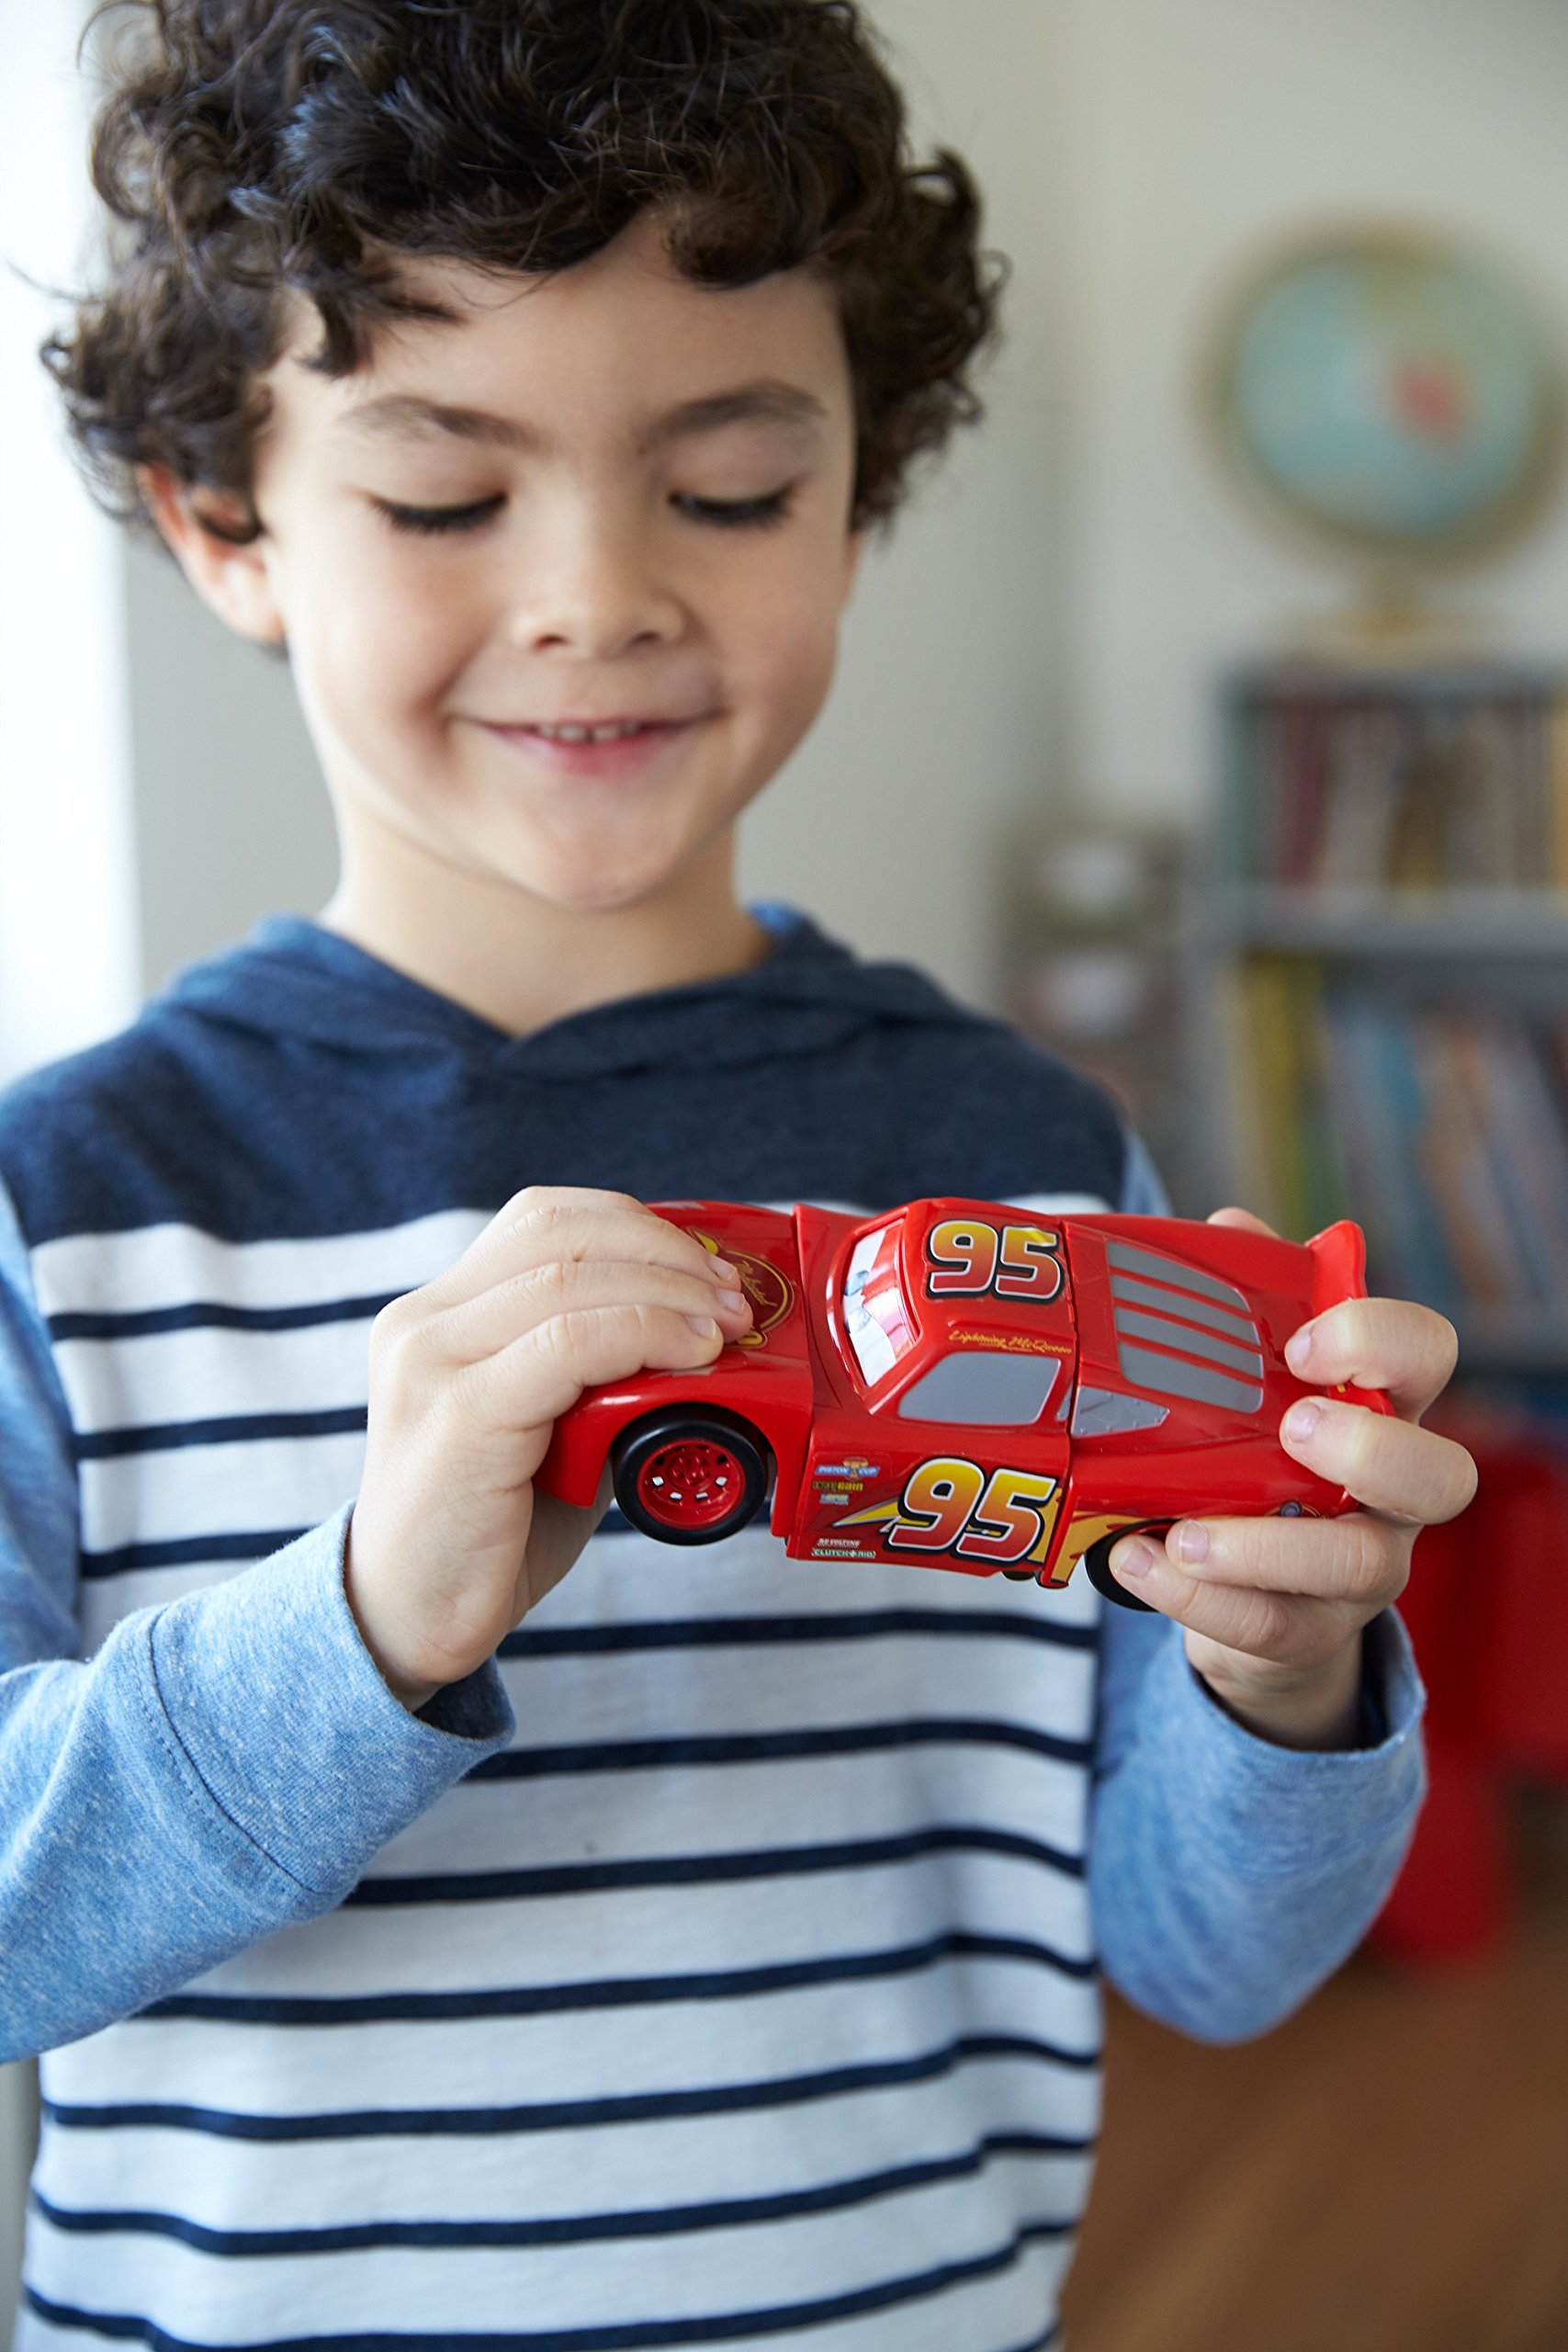 Disney DYW39 Pixar Cars 3 Race and Reck Lightning McQueen Vehicle Disney New Disney Pixar Cars 3 Twisted Crashers vehicle.  His body twists and his eyes change after the crash!  Restore him to his former; pre smash glory by simply twisting the car back into place! 3